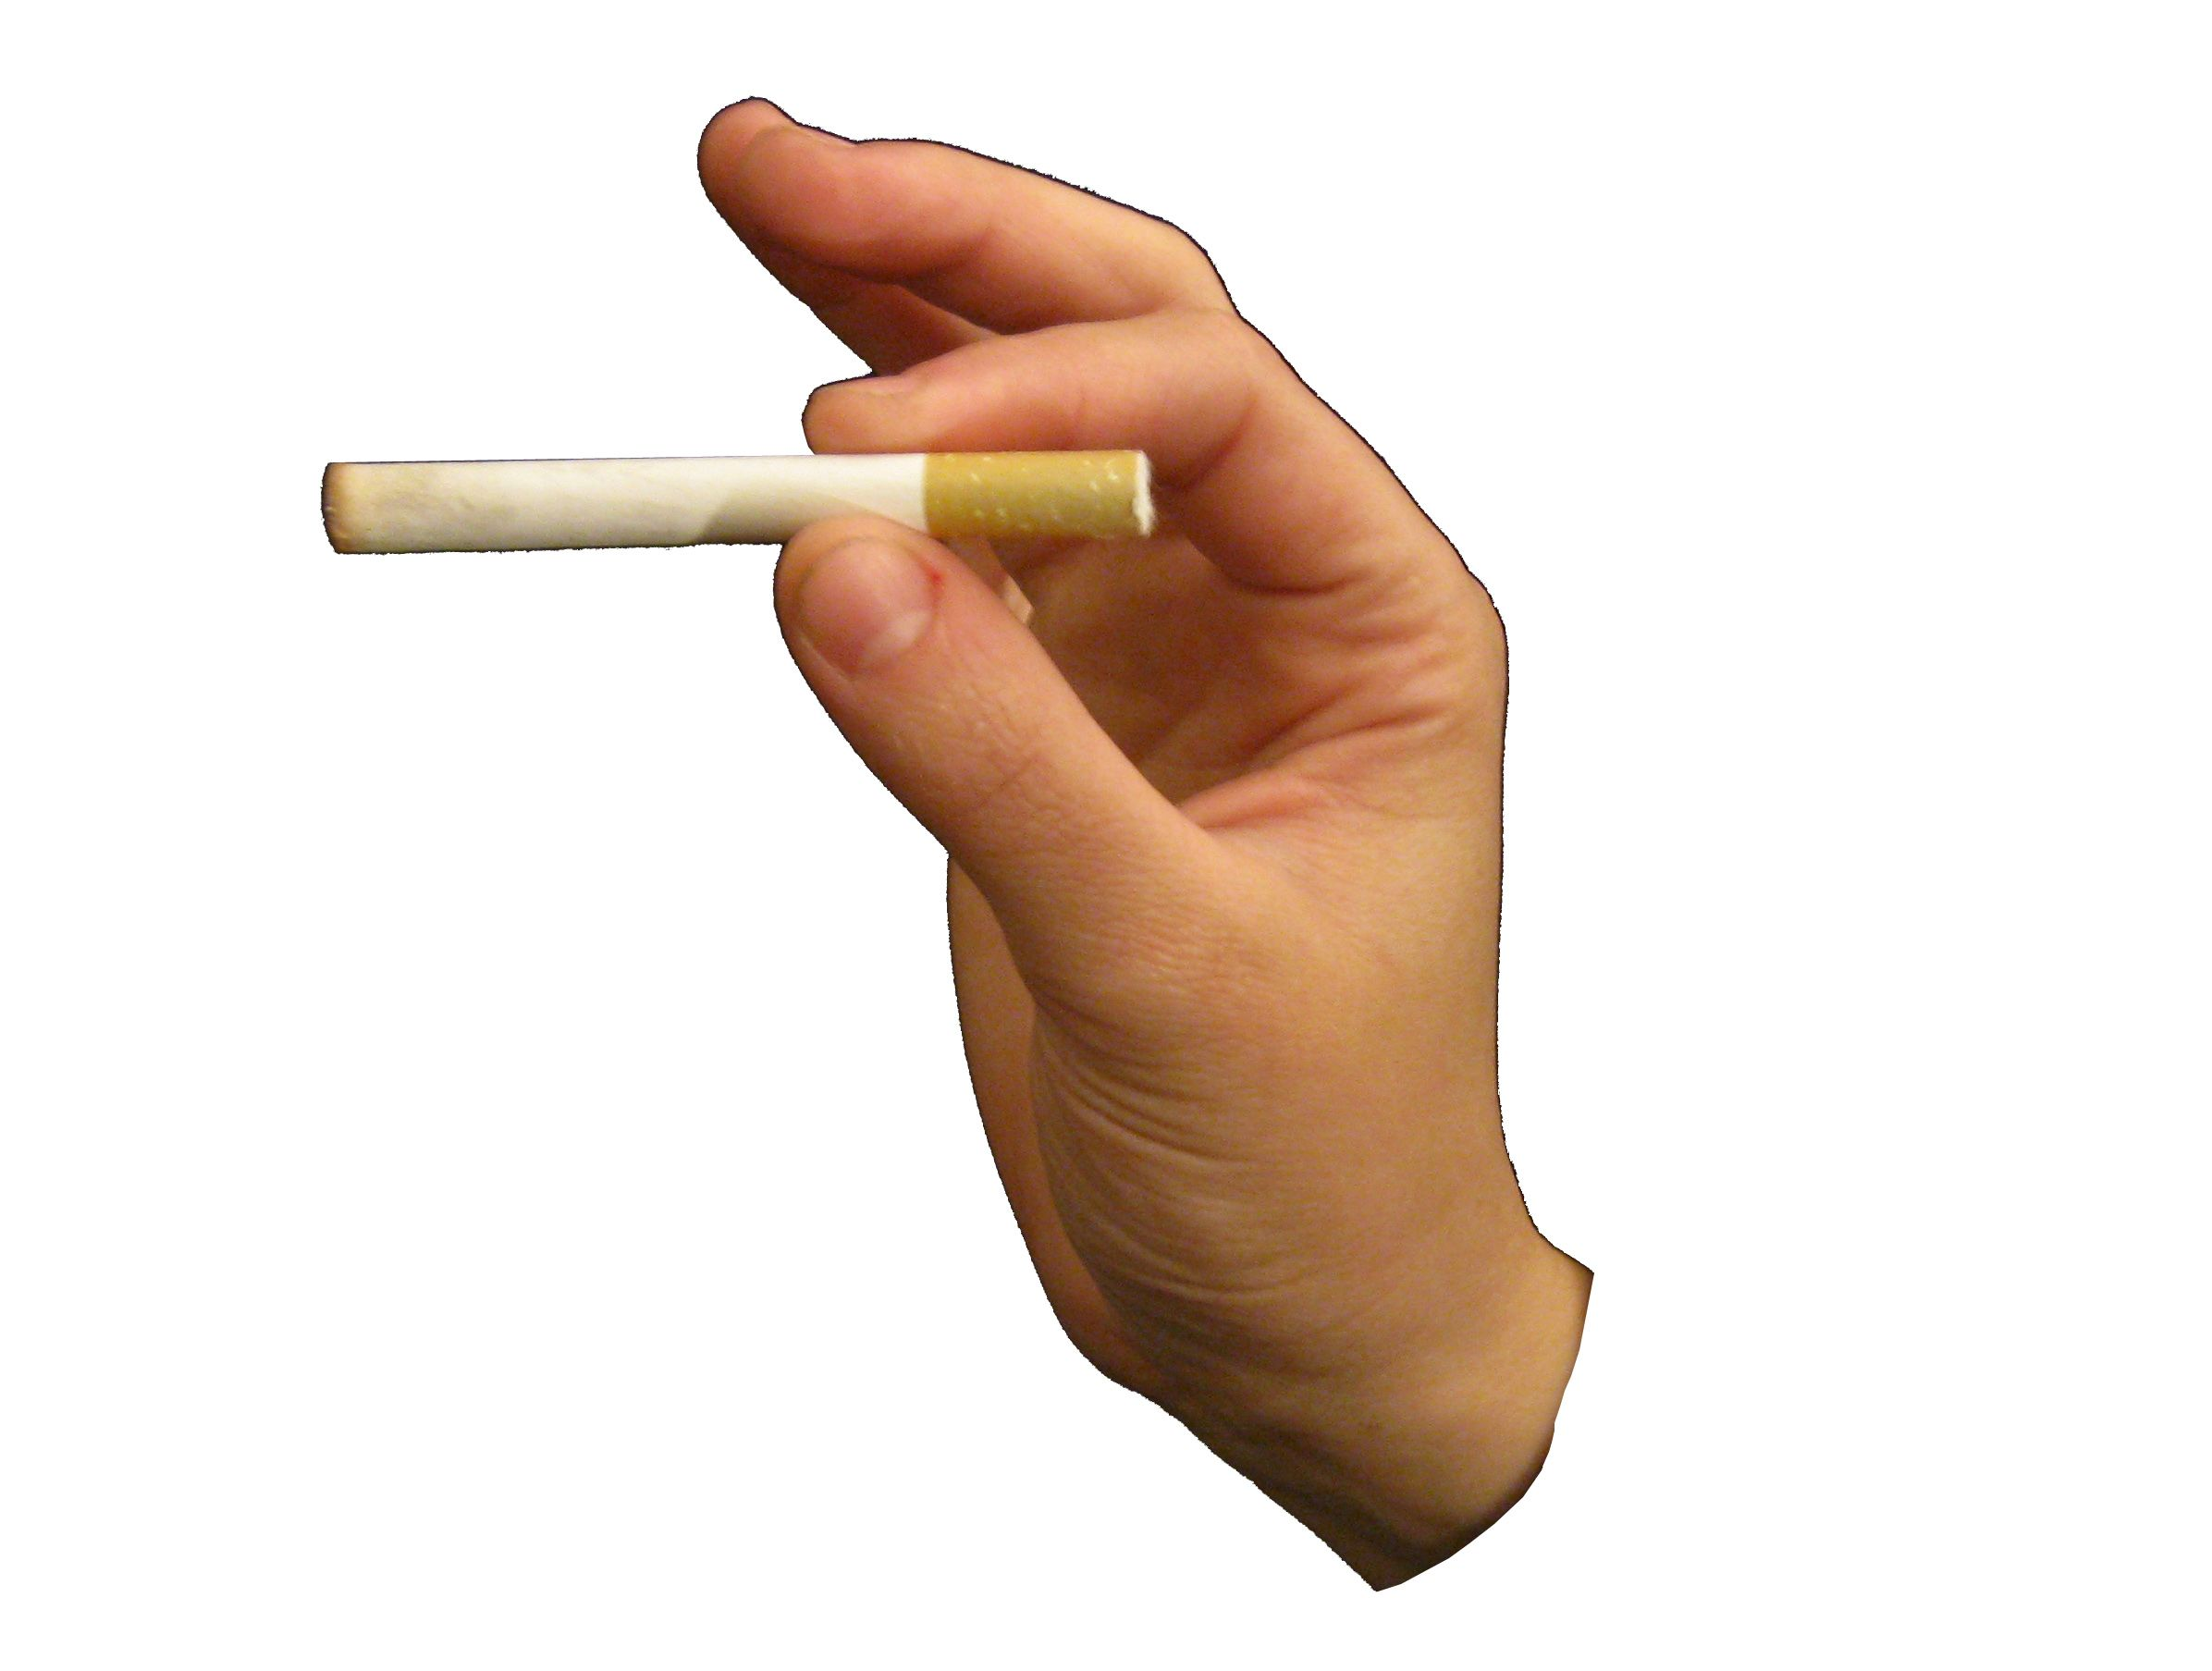 Hand Holding Stick ~ Hand holding cigarette hold your cancer stick